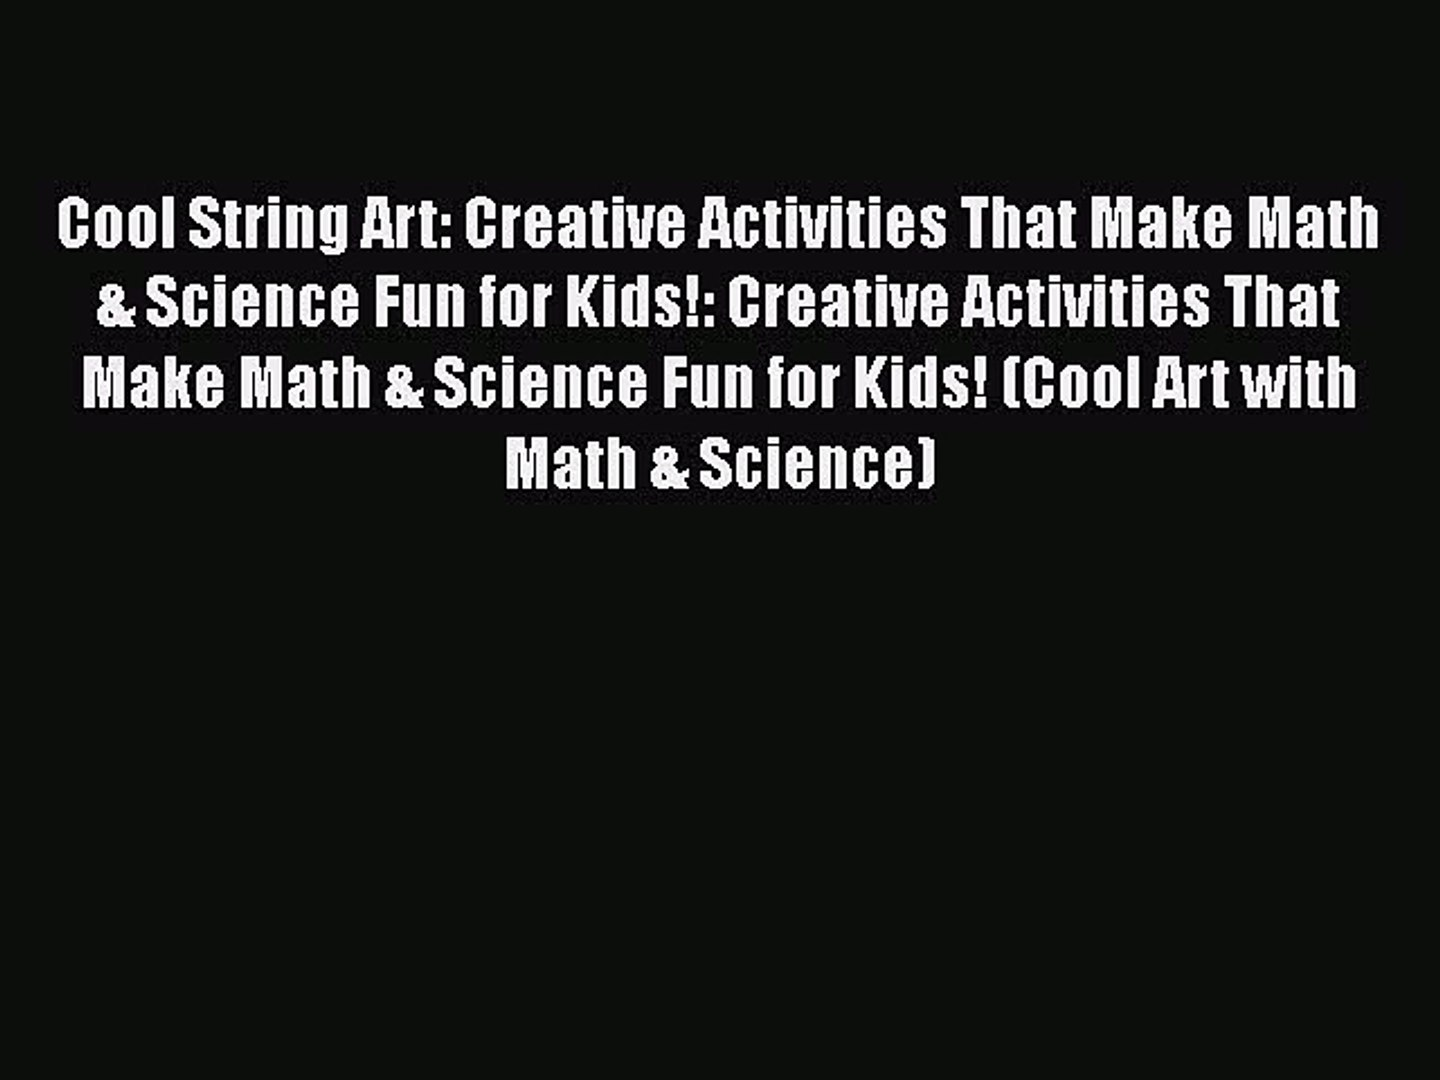 Cool String Art: Creative Activities That Make Math & Science Fun for Kids!: Creative Activities